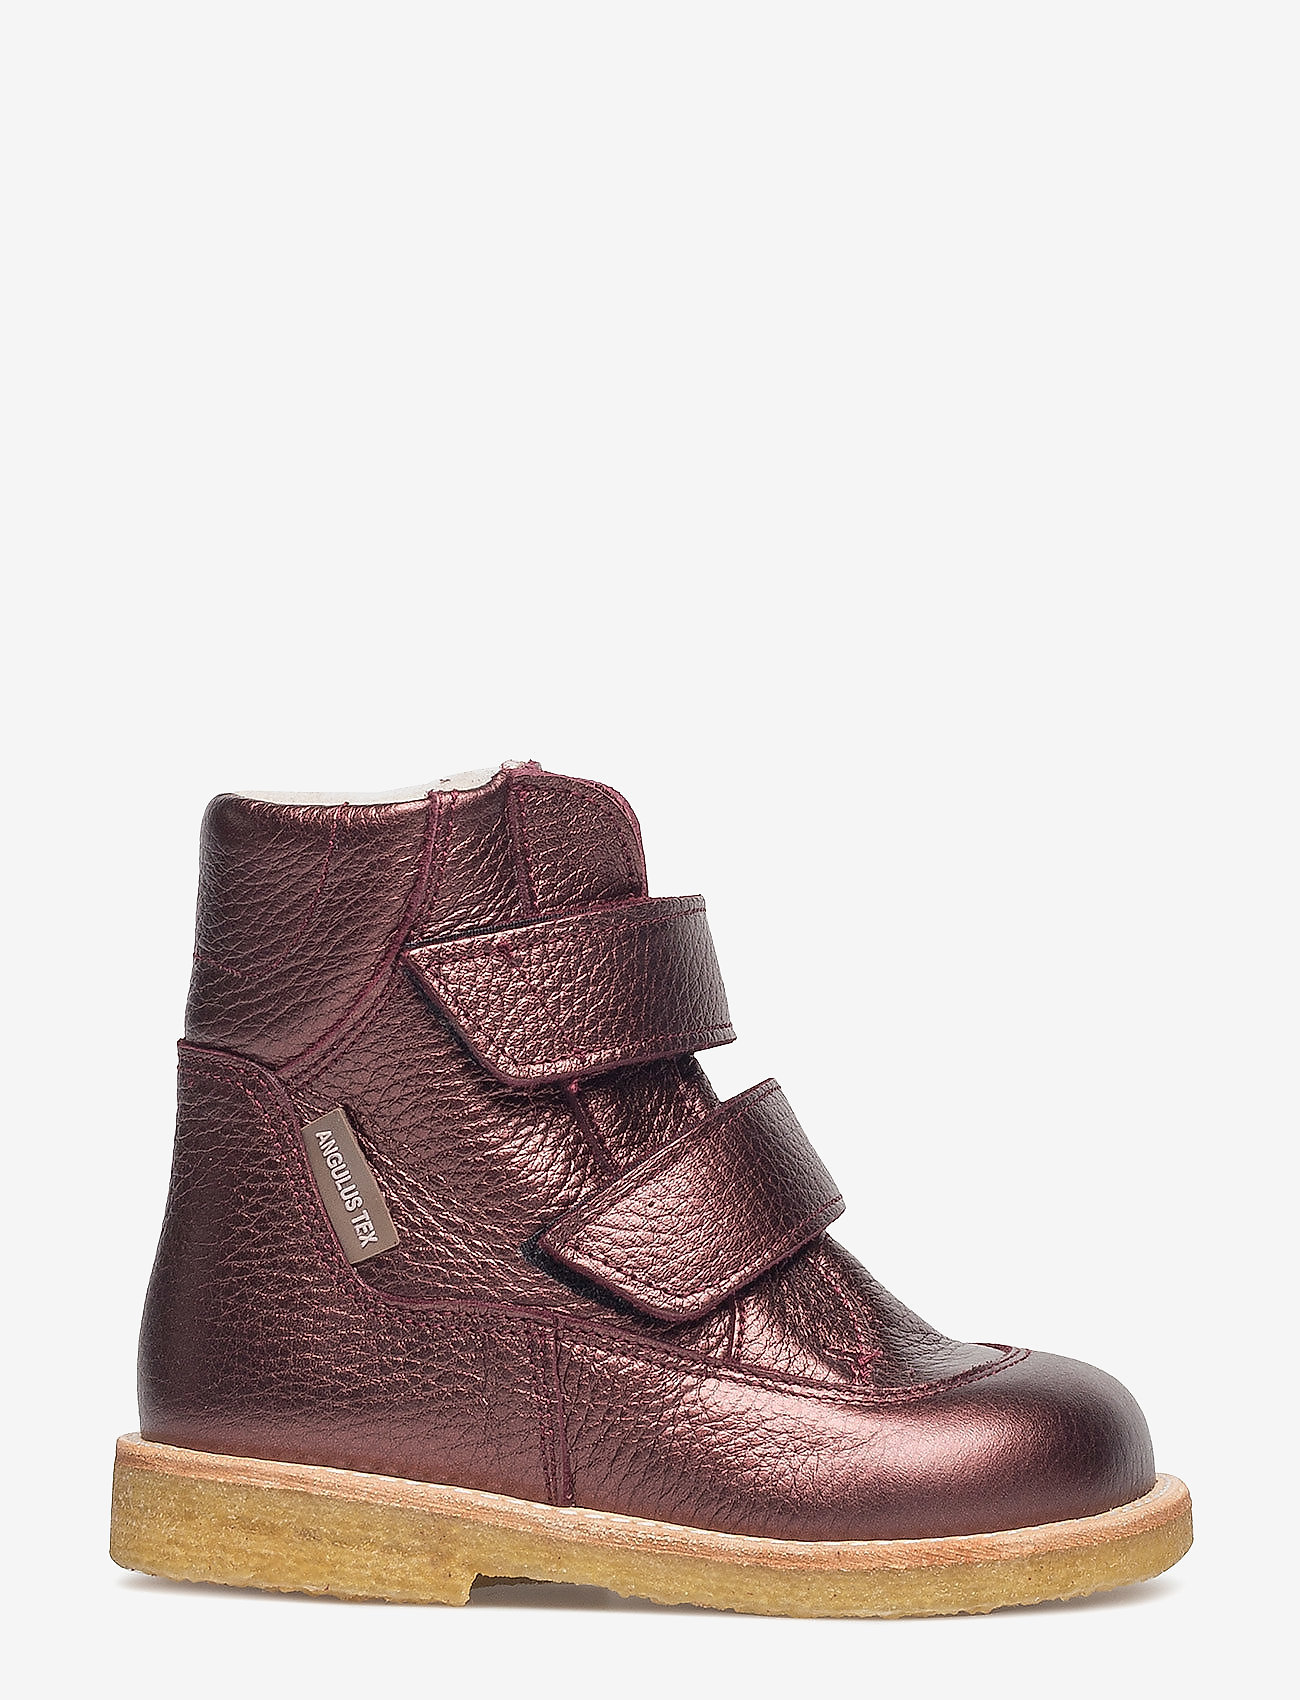 ANGULUS - Boots - flat - with velcro - stiefel - 1536 bordeaux shine - 1